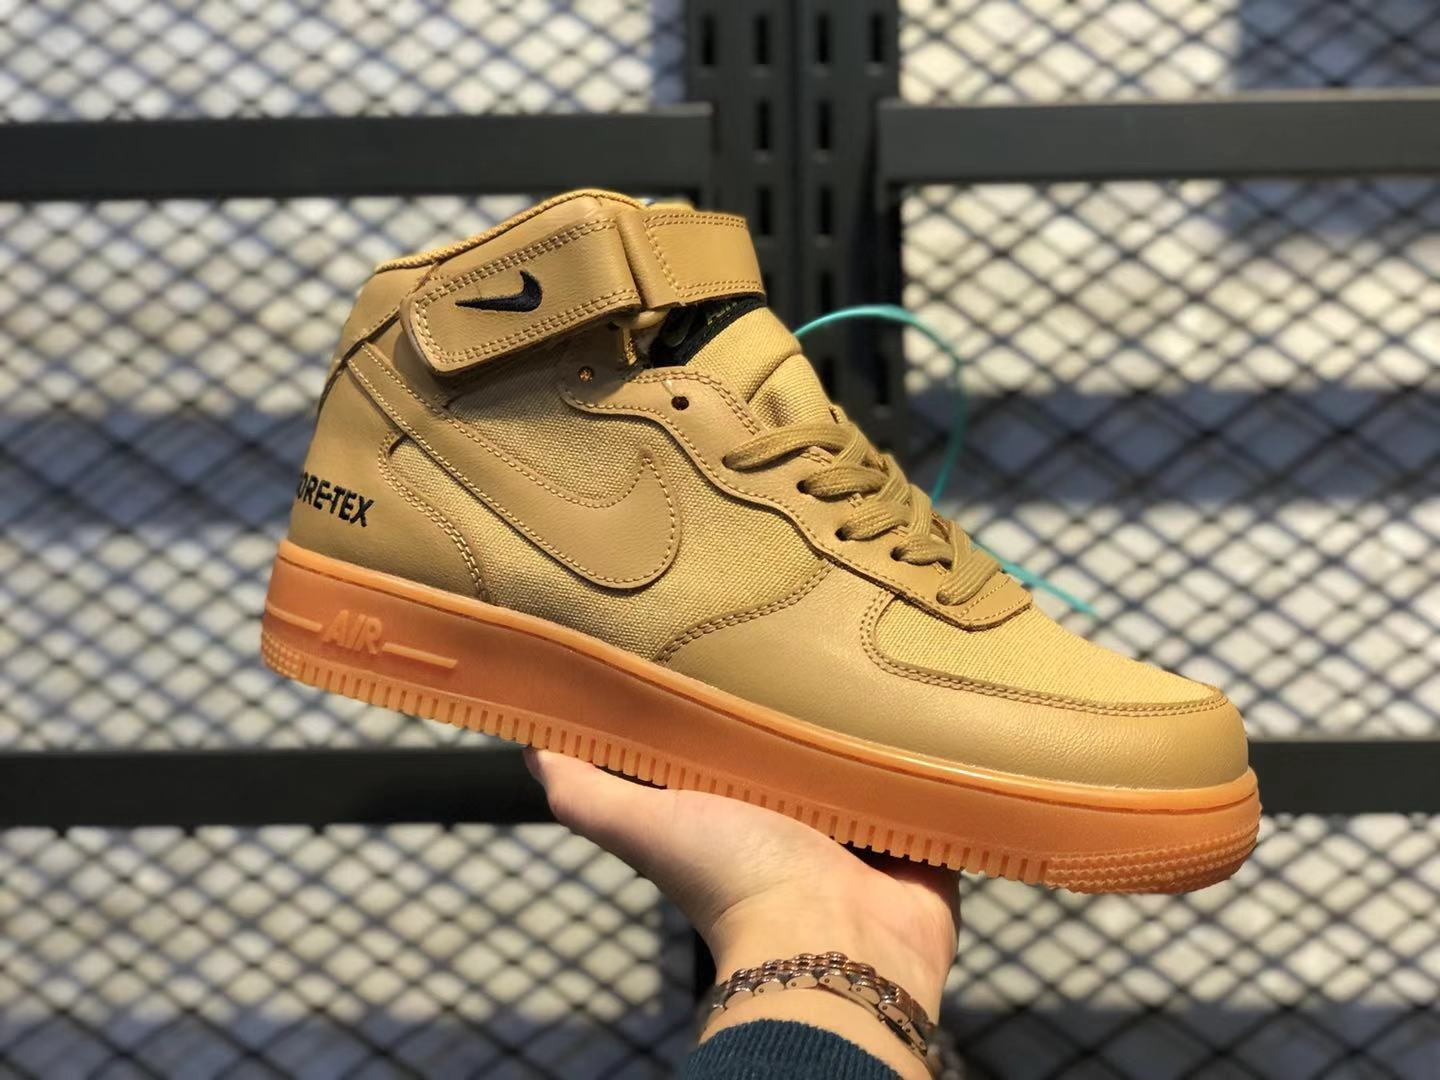 Nike Air Force 1'07 Flax/Flax-Outdoor Green Casual Shoes Super Deals CK2630-101